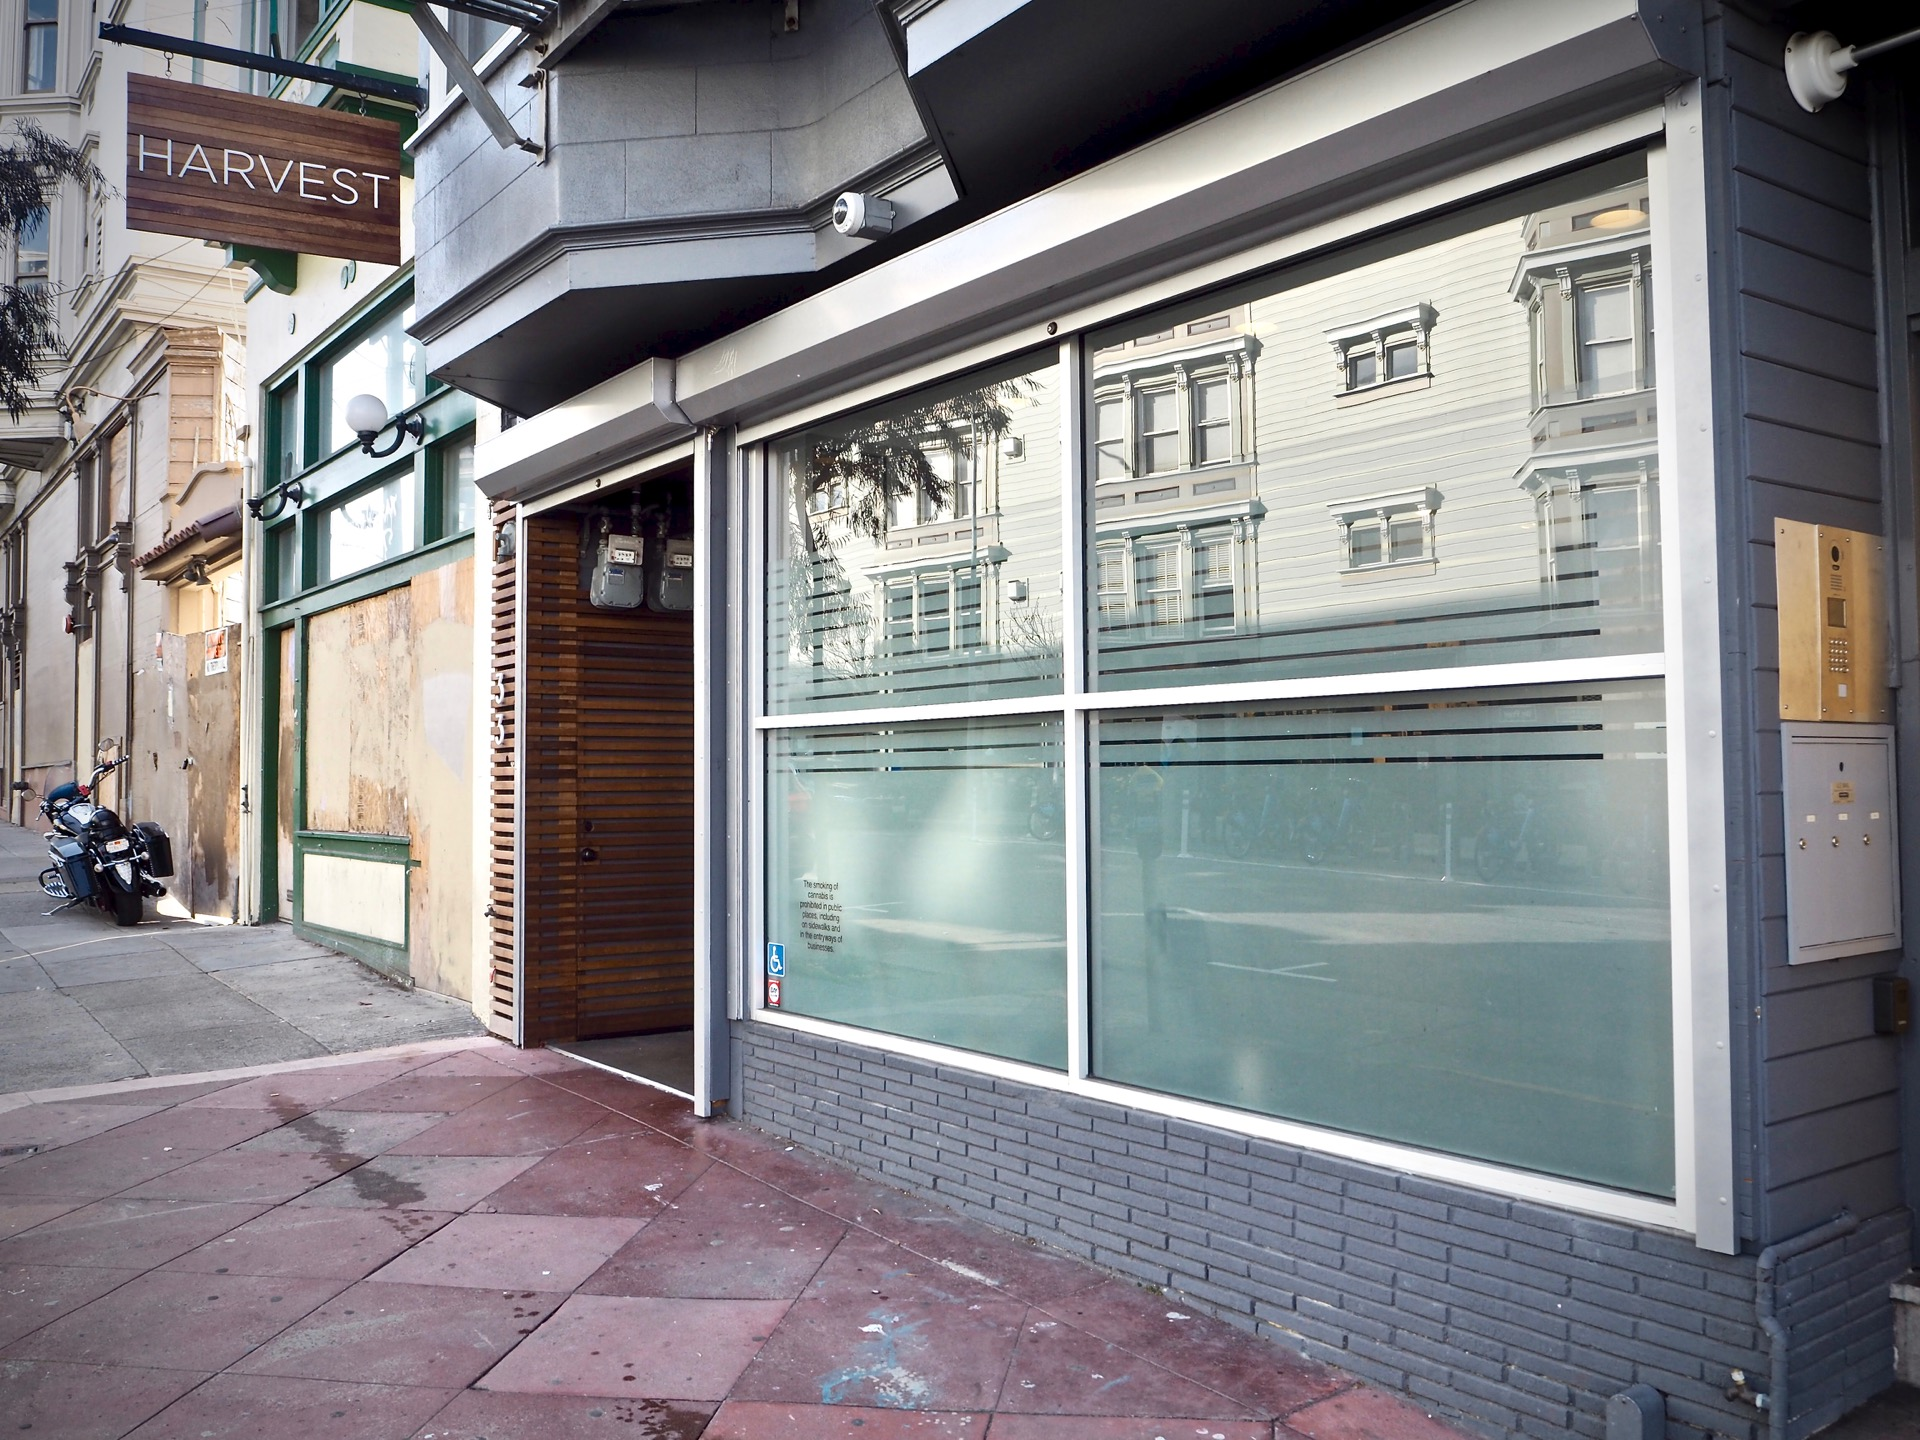 Harvest-Off-Mission-Cannabis-Dispensary-San-Francisco-Exterior-Store-Front.jpg